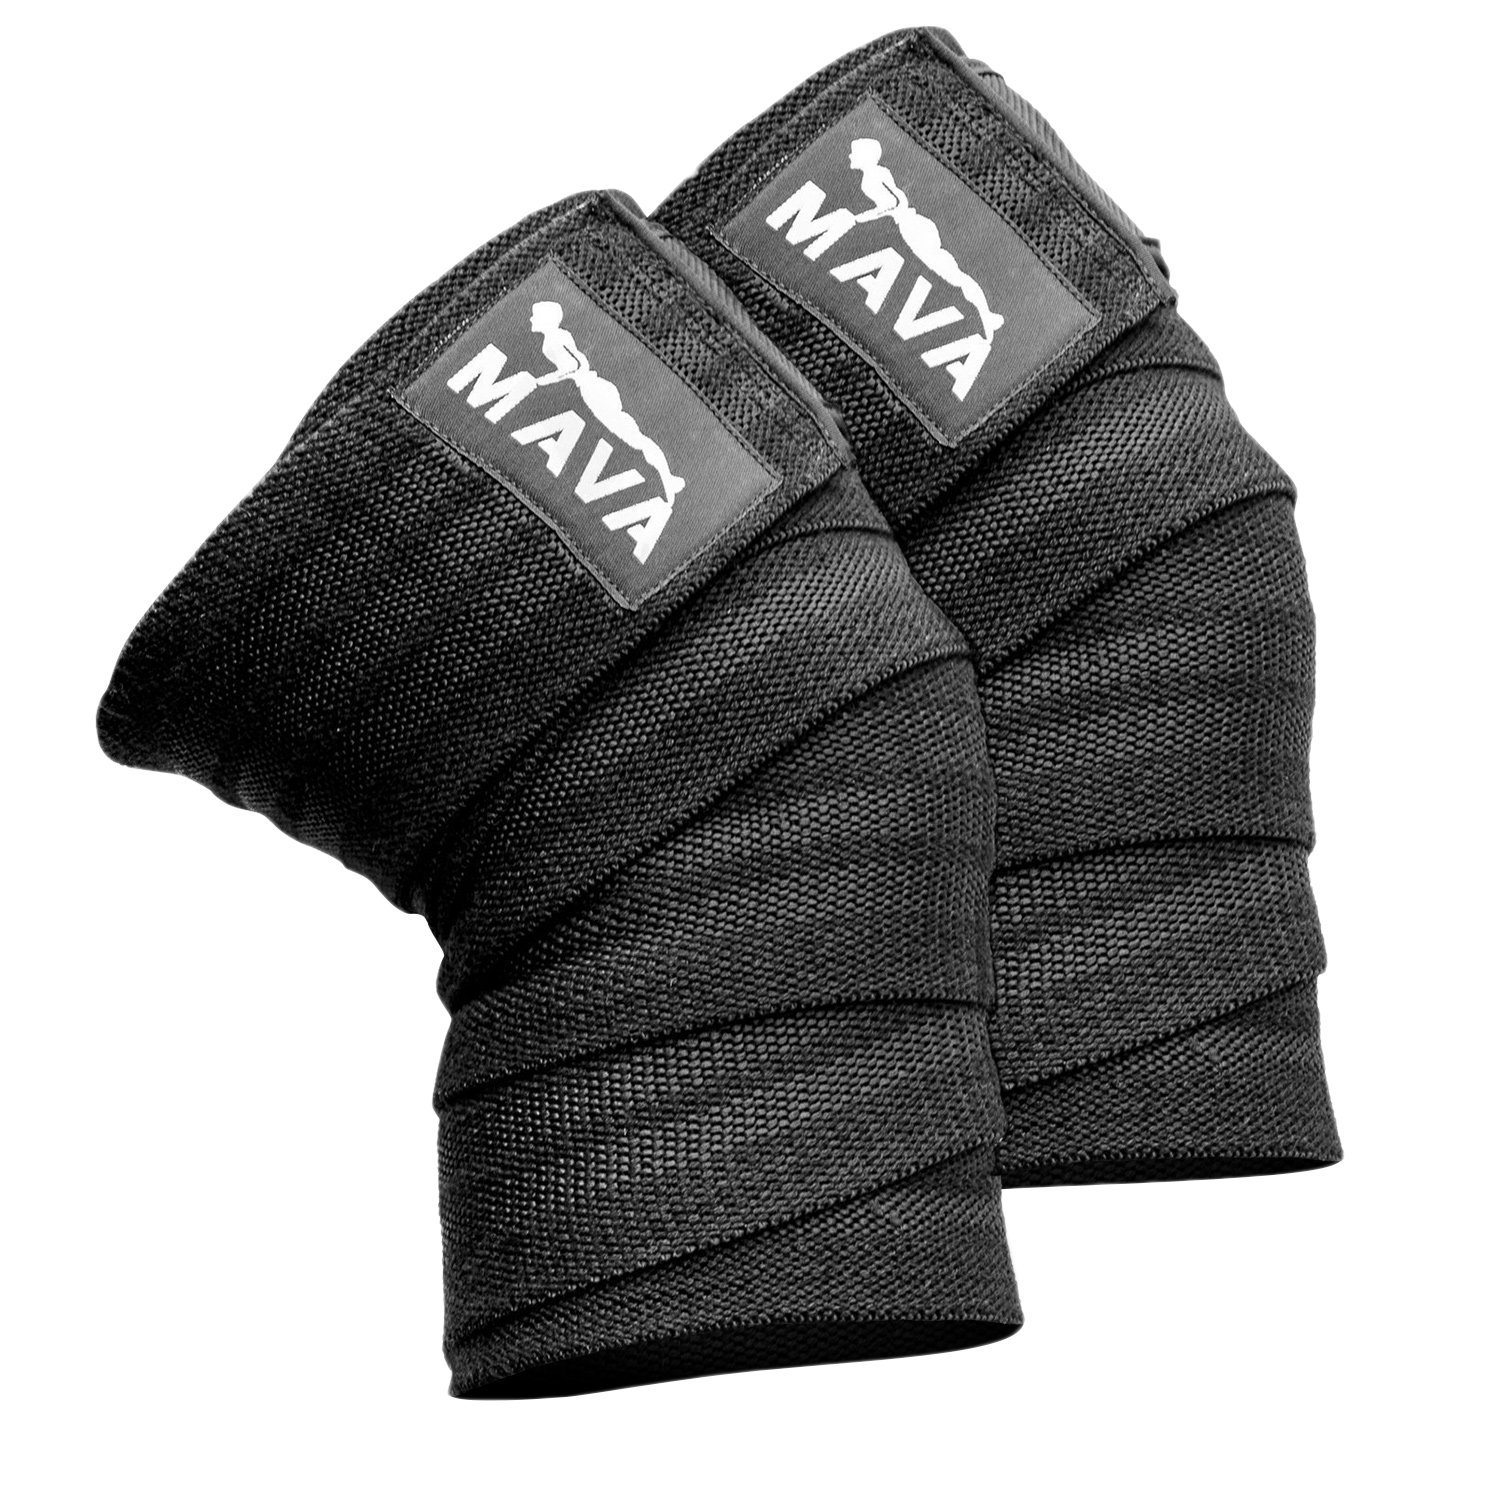 Mava Sports Knee Wraps (Pair) for Cross Training WODs,Gym Workout,Weightlifting,Fitness & Powerlifting - Best Knee Straps for Squats - for Men & Women- 72''-Compression & Elastic Support (Black)